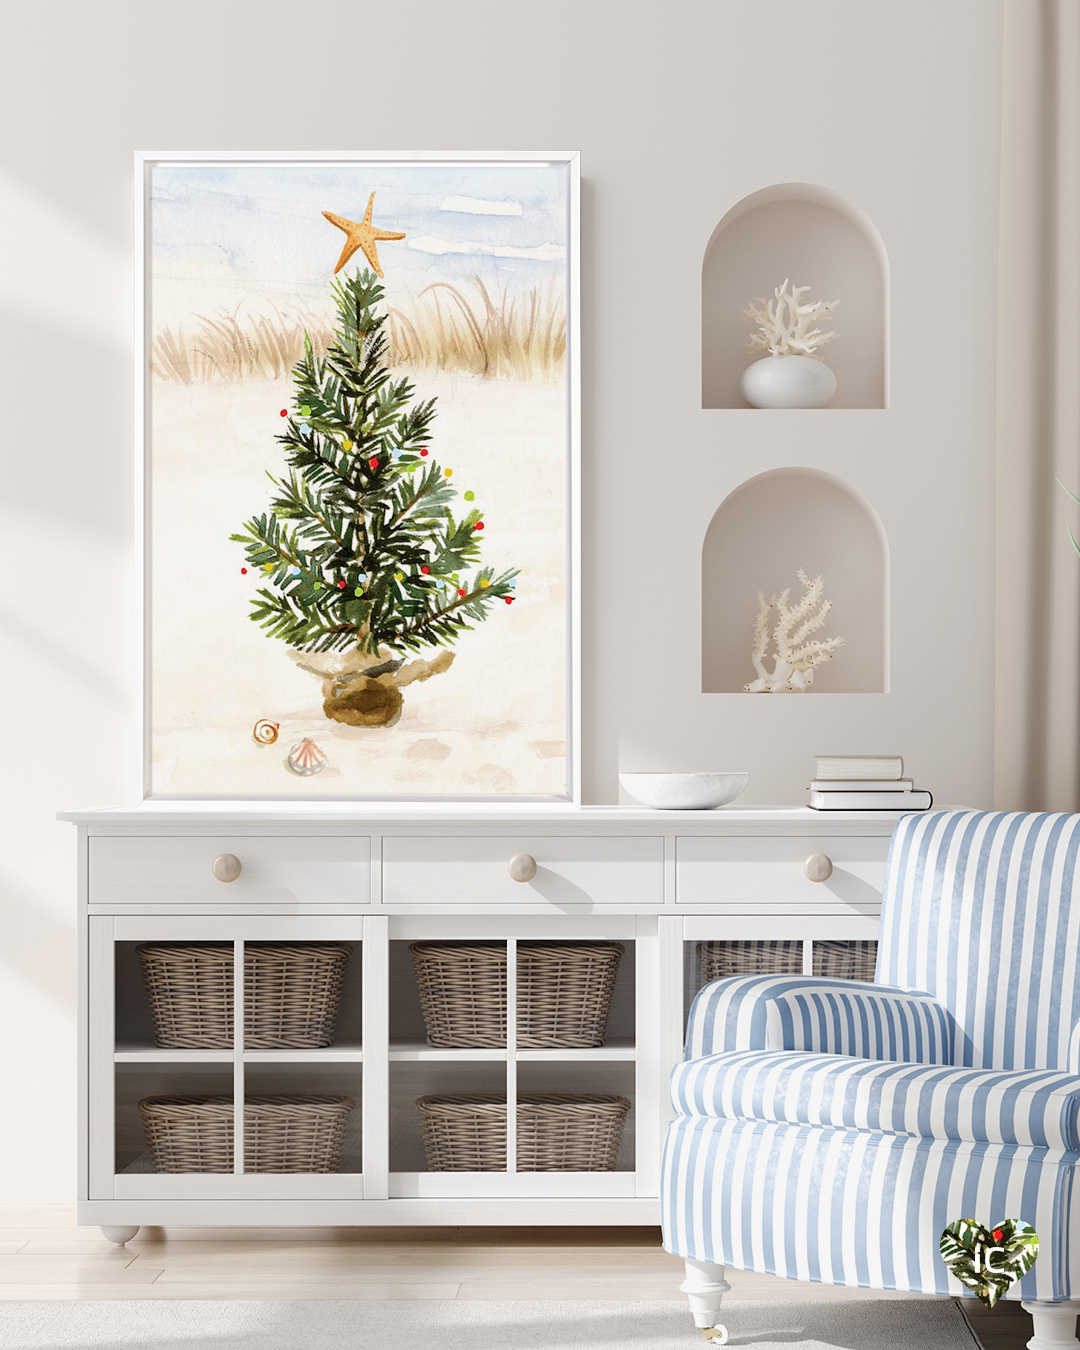 Print of a Christmas tree on a beach leaning on a white dresser in a coastal room with a blue and white arm chair